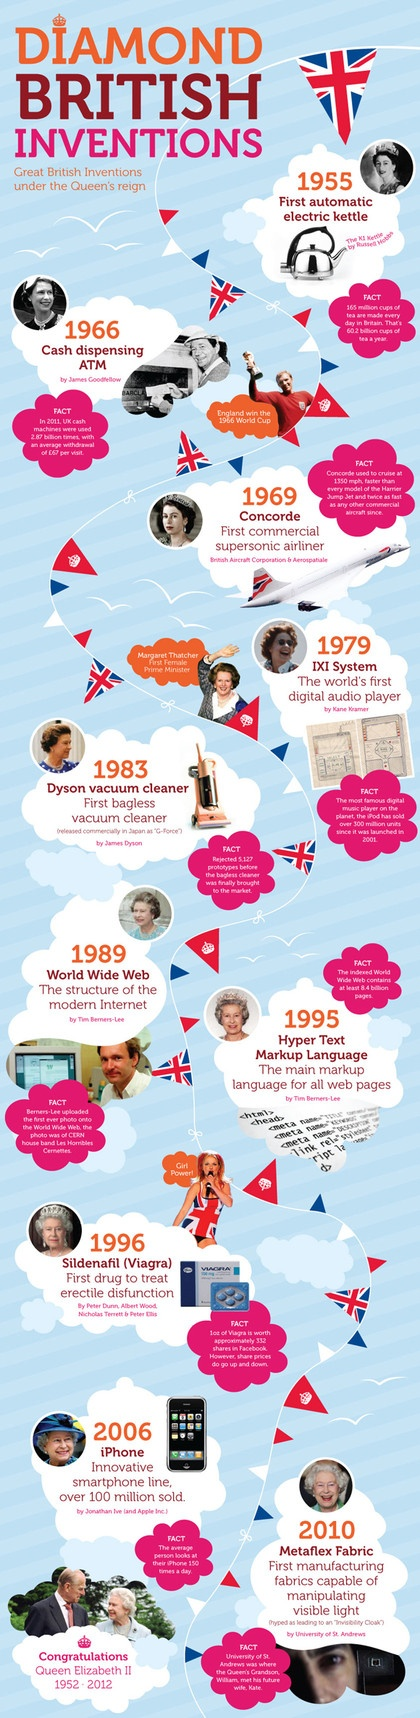 British inventions infographic during the last 60 years of the Queen's reign - interesting inventions here!